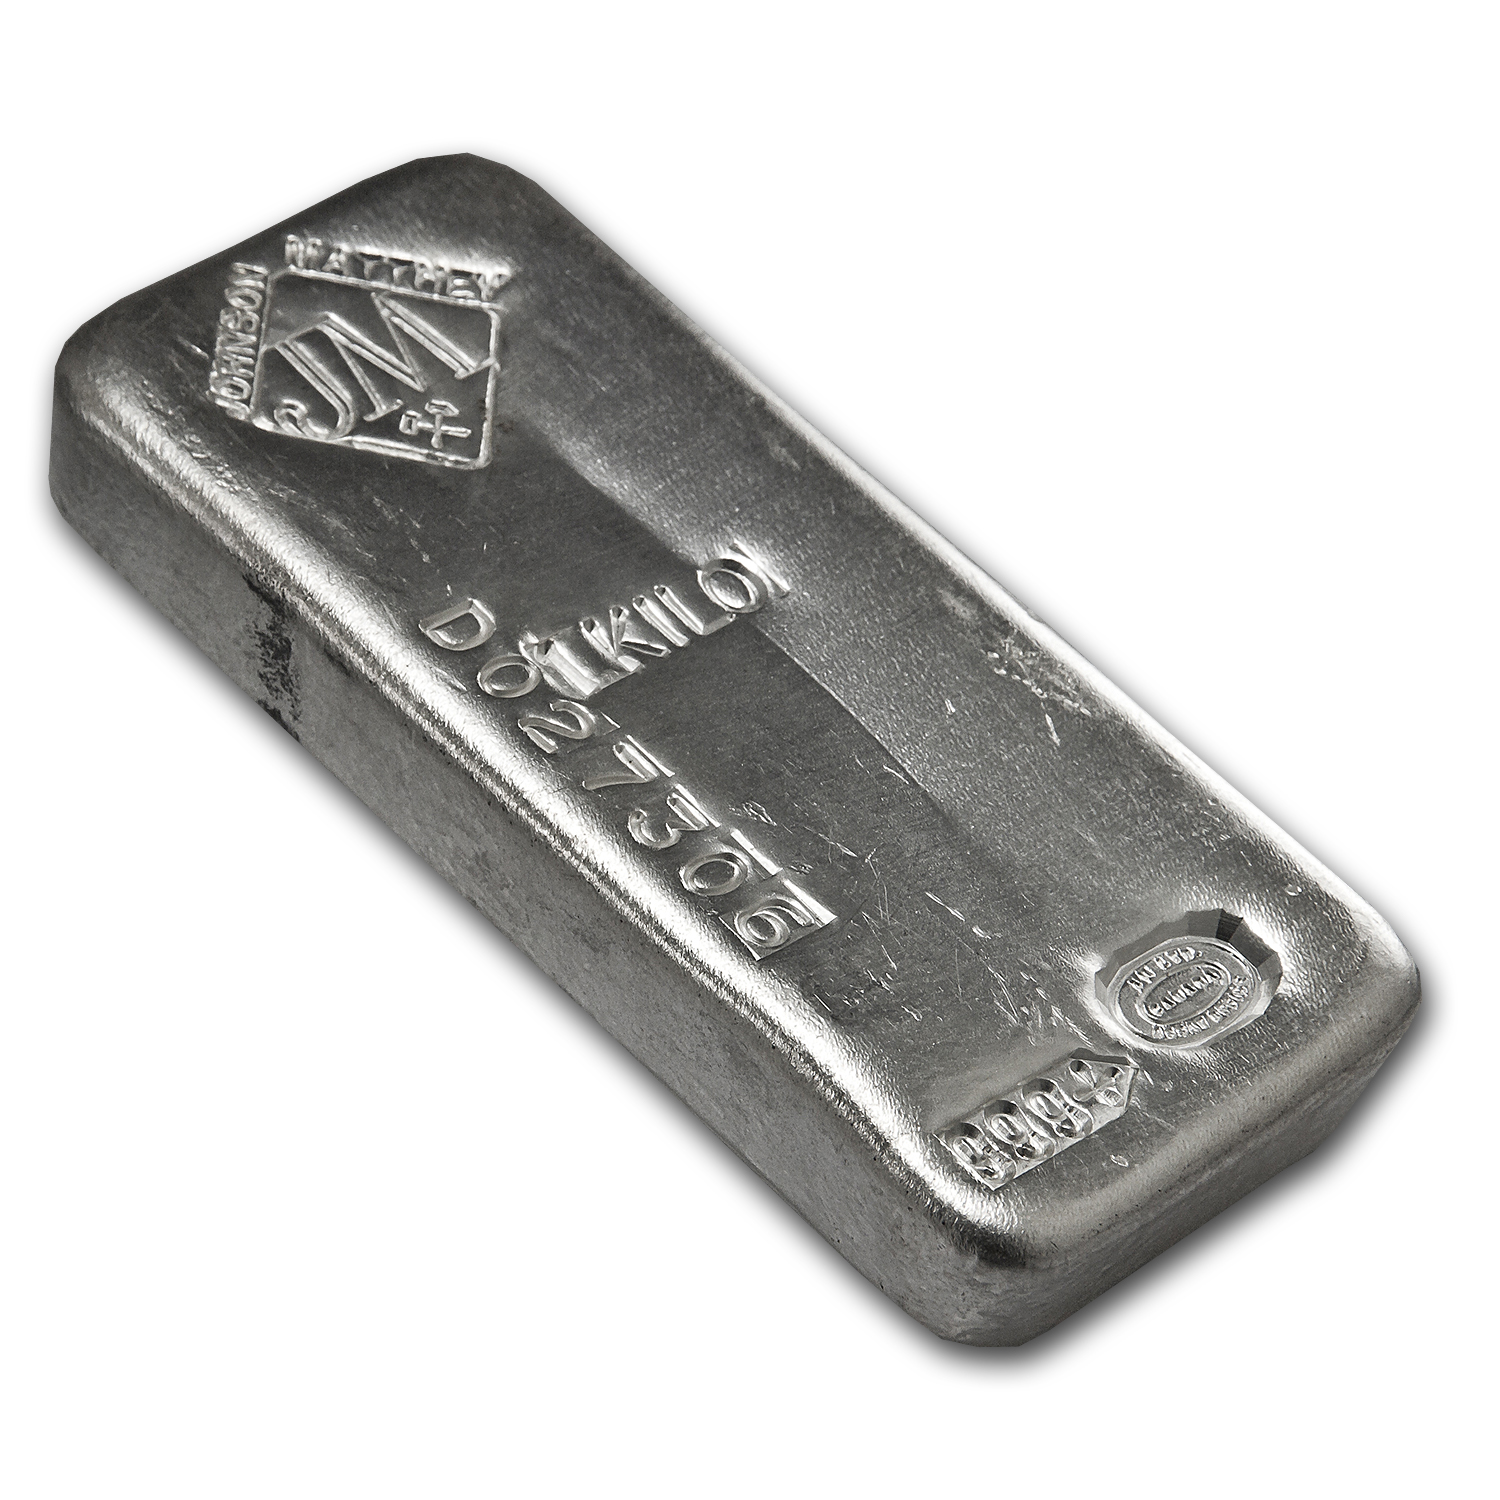 1 kilo Silver Bar - Johnson Matthey (Canada, Serial #)